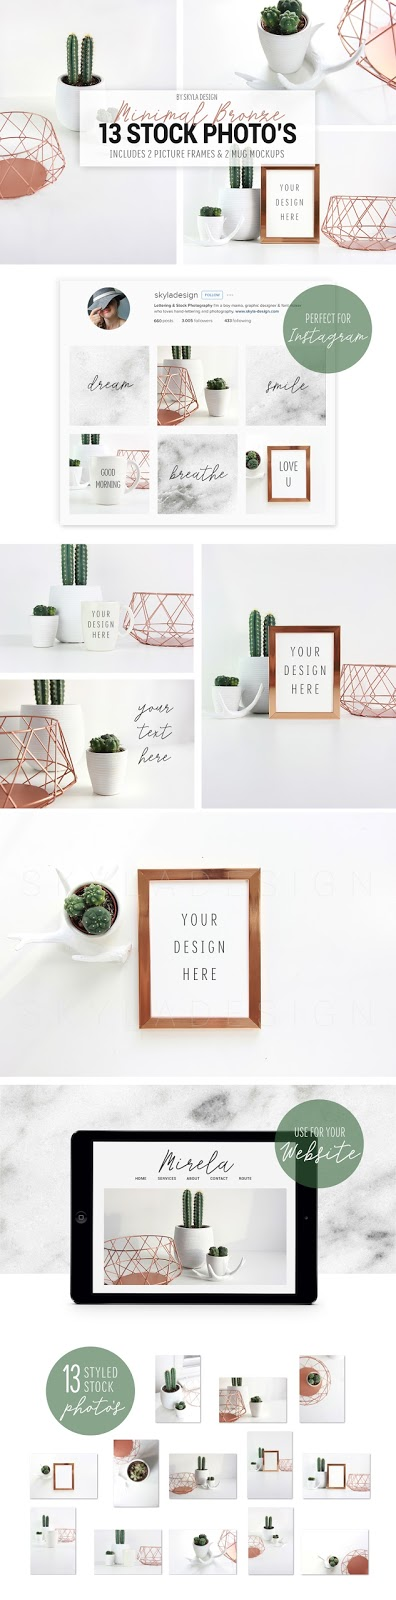 minimal bronze stock photo mockup